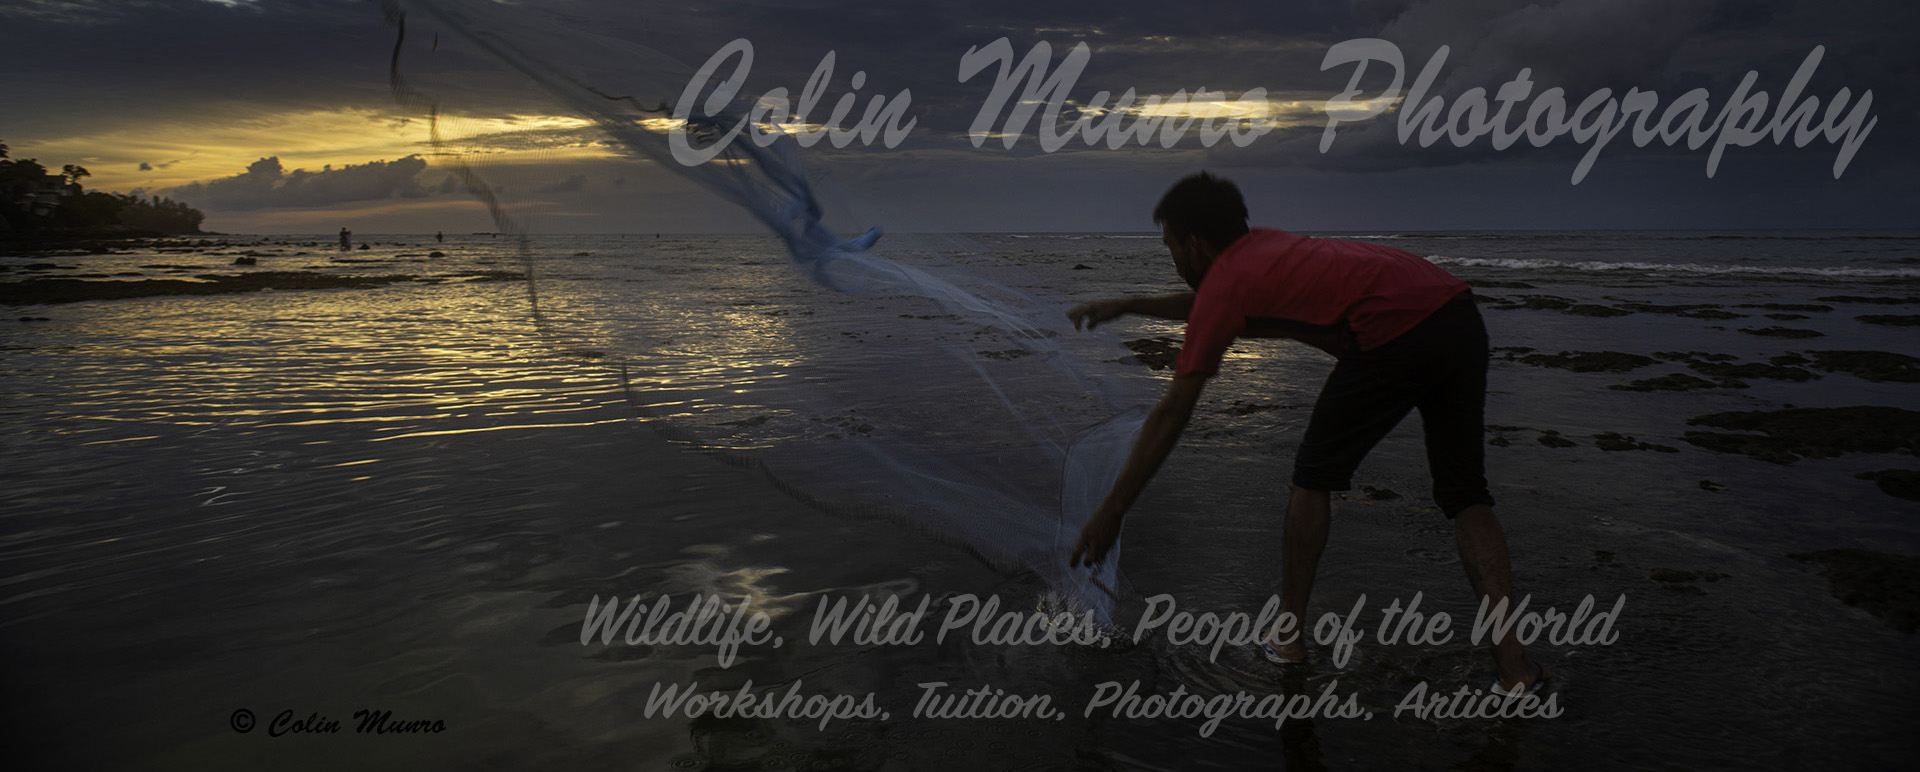 Colin Munro Photography